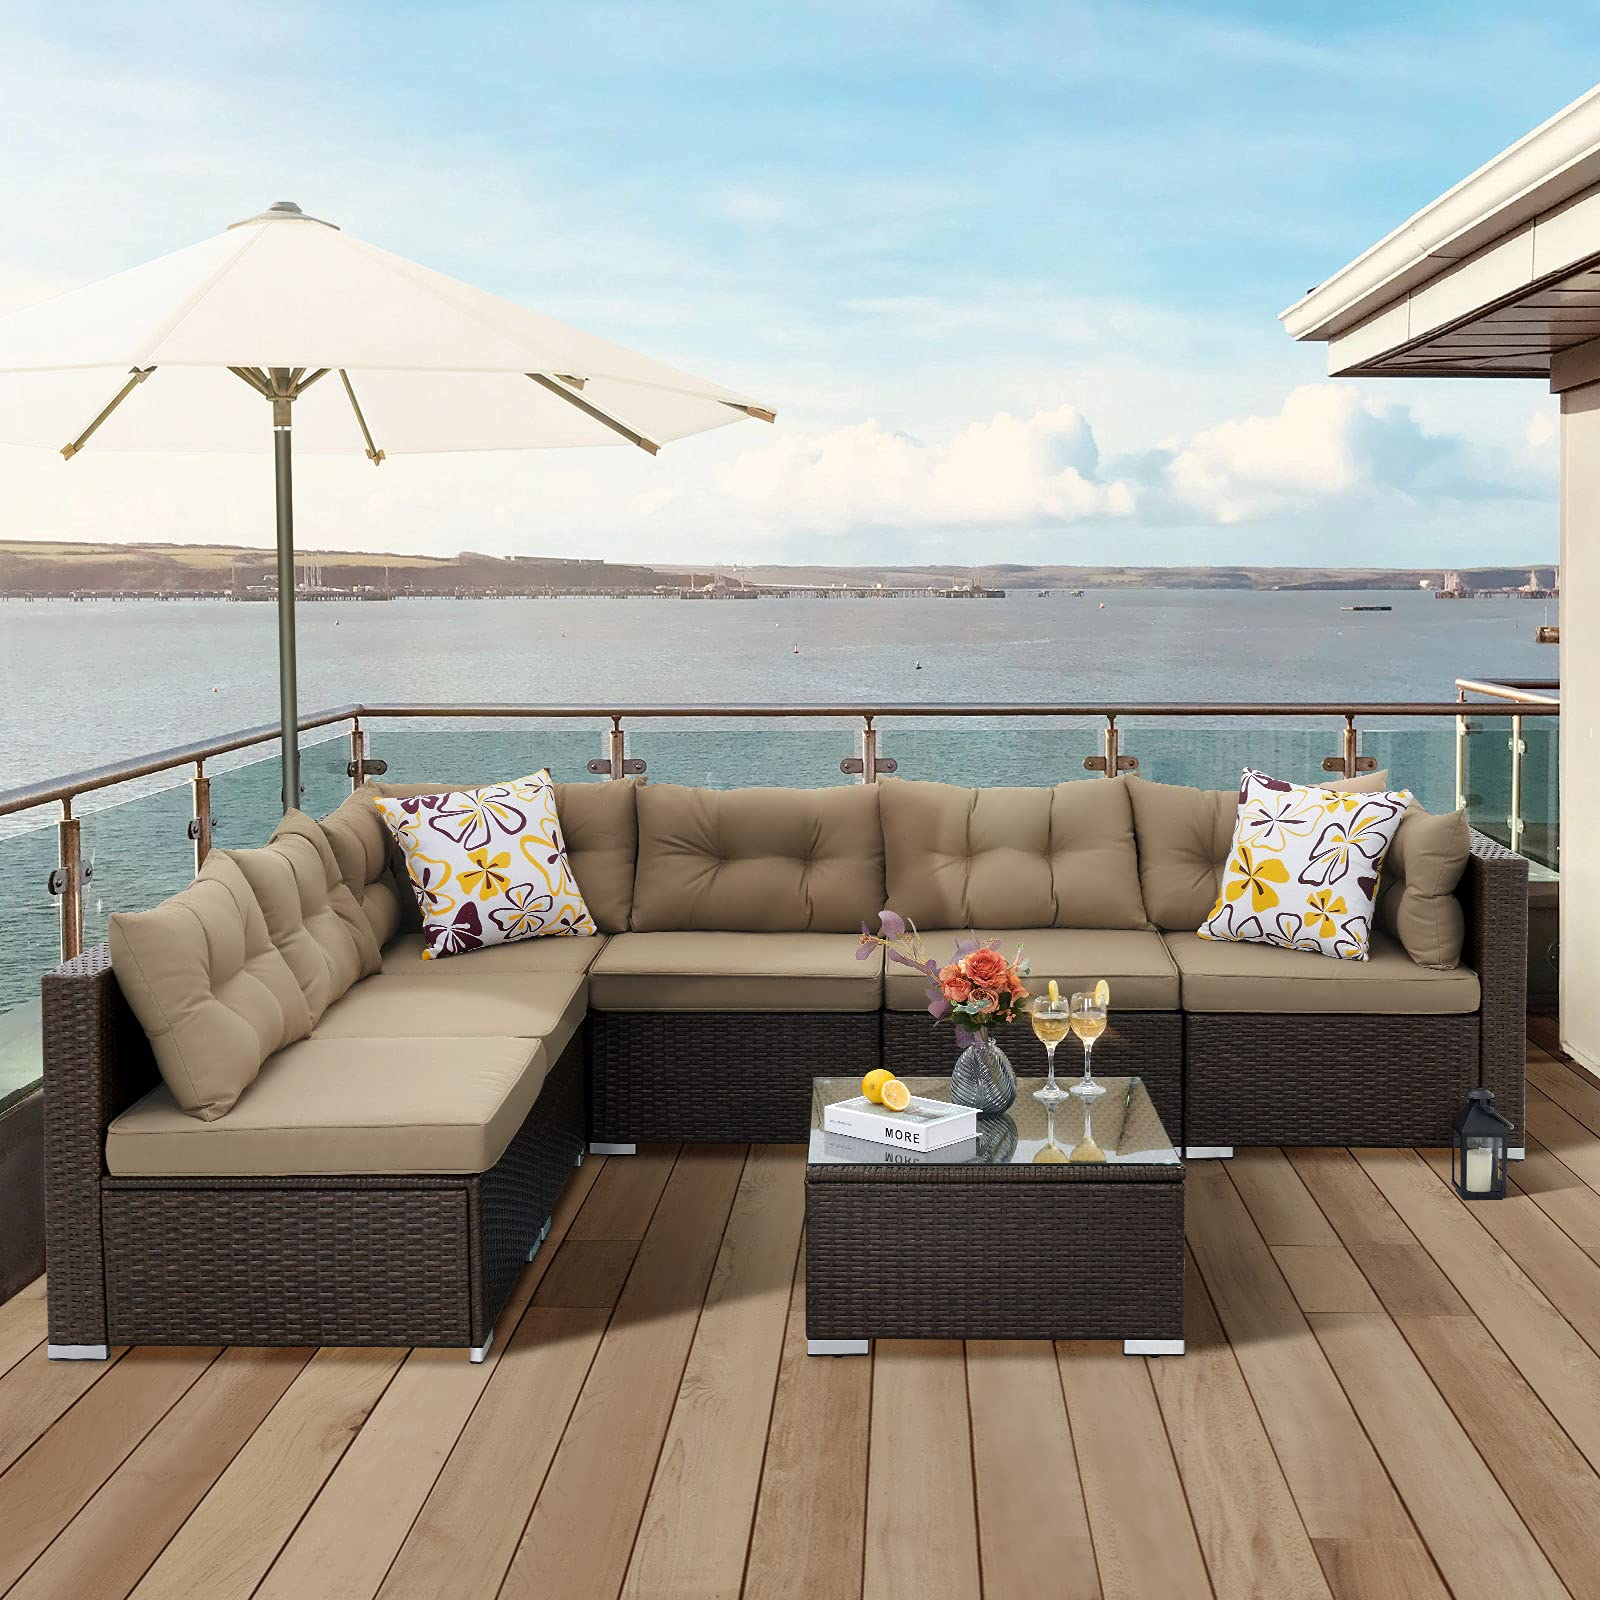 YITAHOME 7 Pieces Patio Furniture Set,All-Weather Rattan Patio Conversation Set,Outdoor Sectional Sofa PE Rattan Wicker Ou...